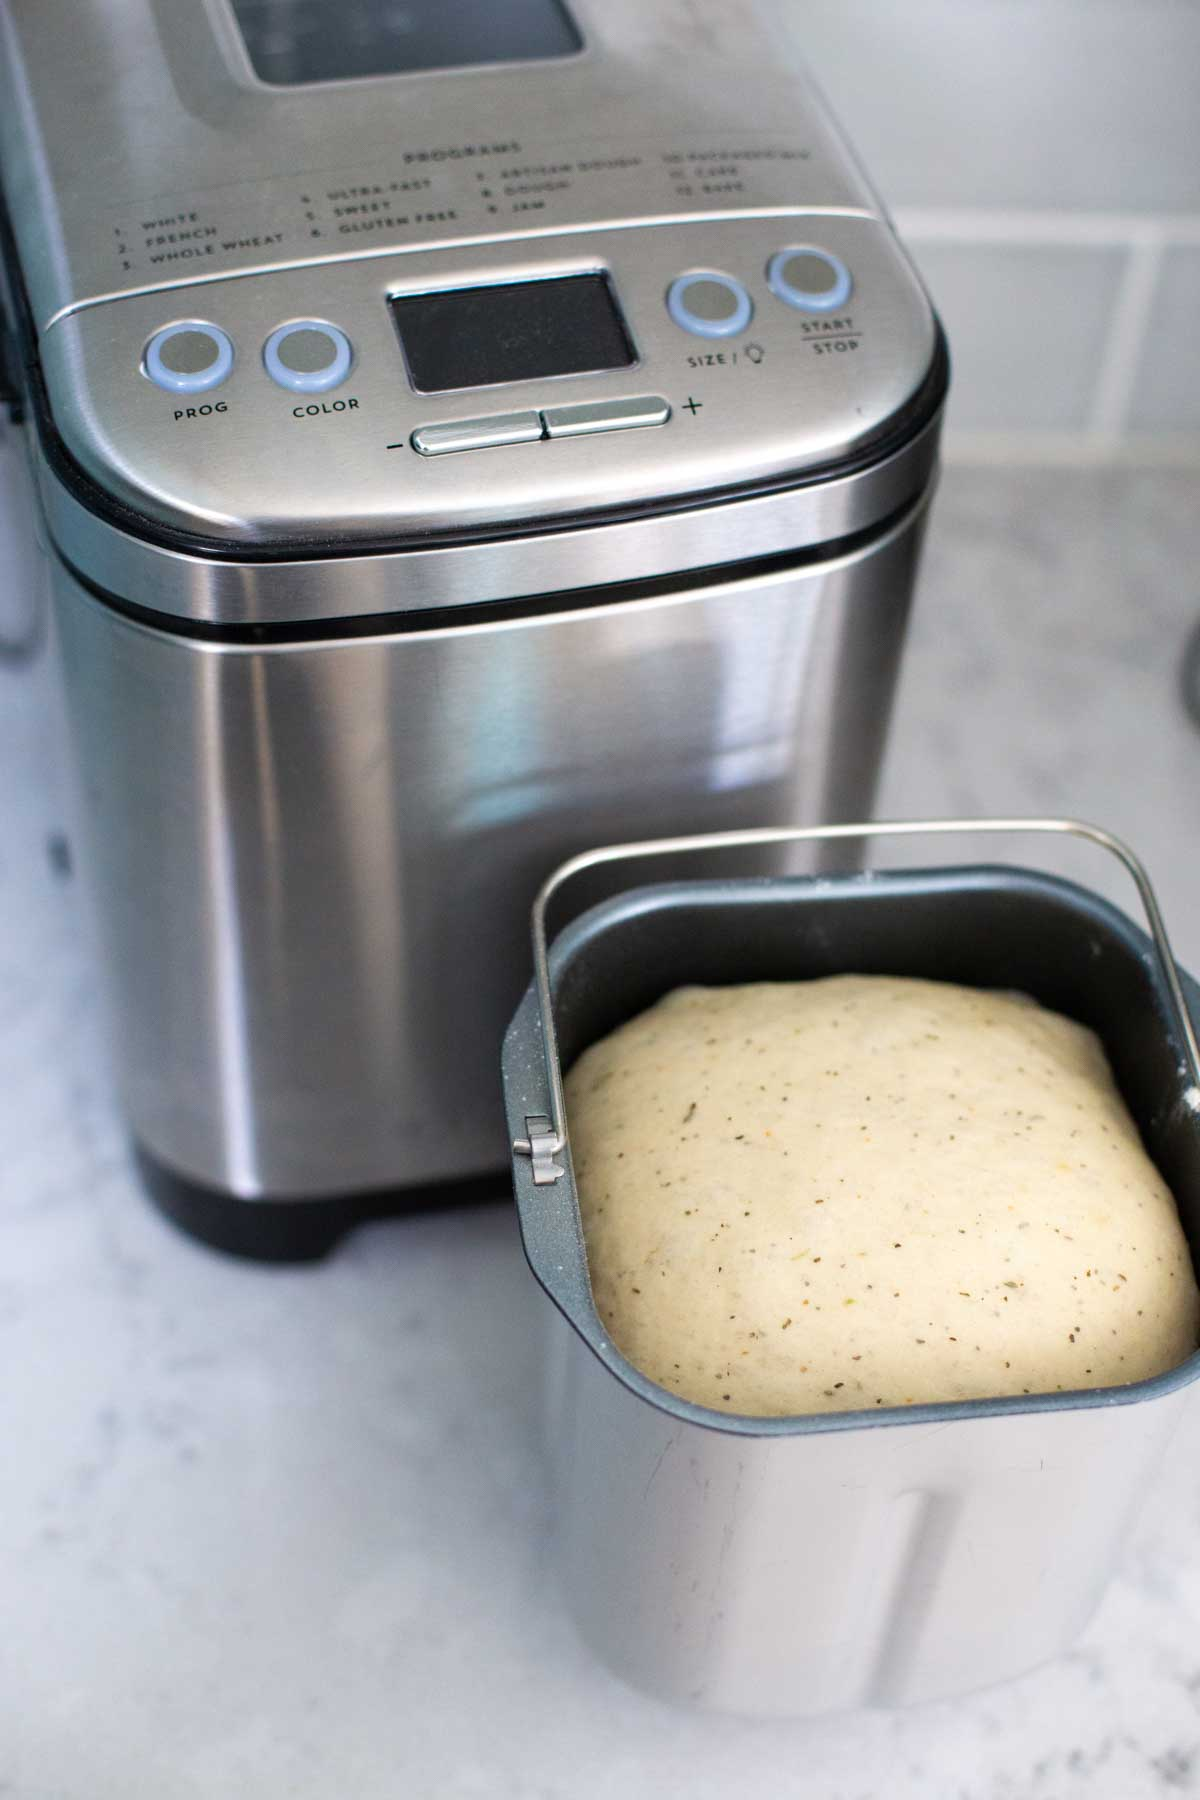 A bread pan filled with focaccia dough sits in front of a Cuisinart compact bread maker.